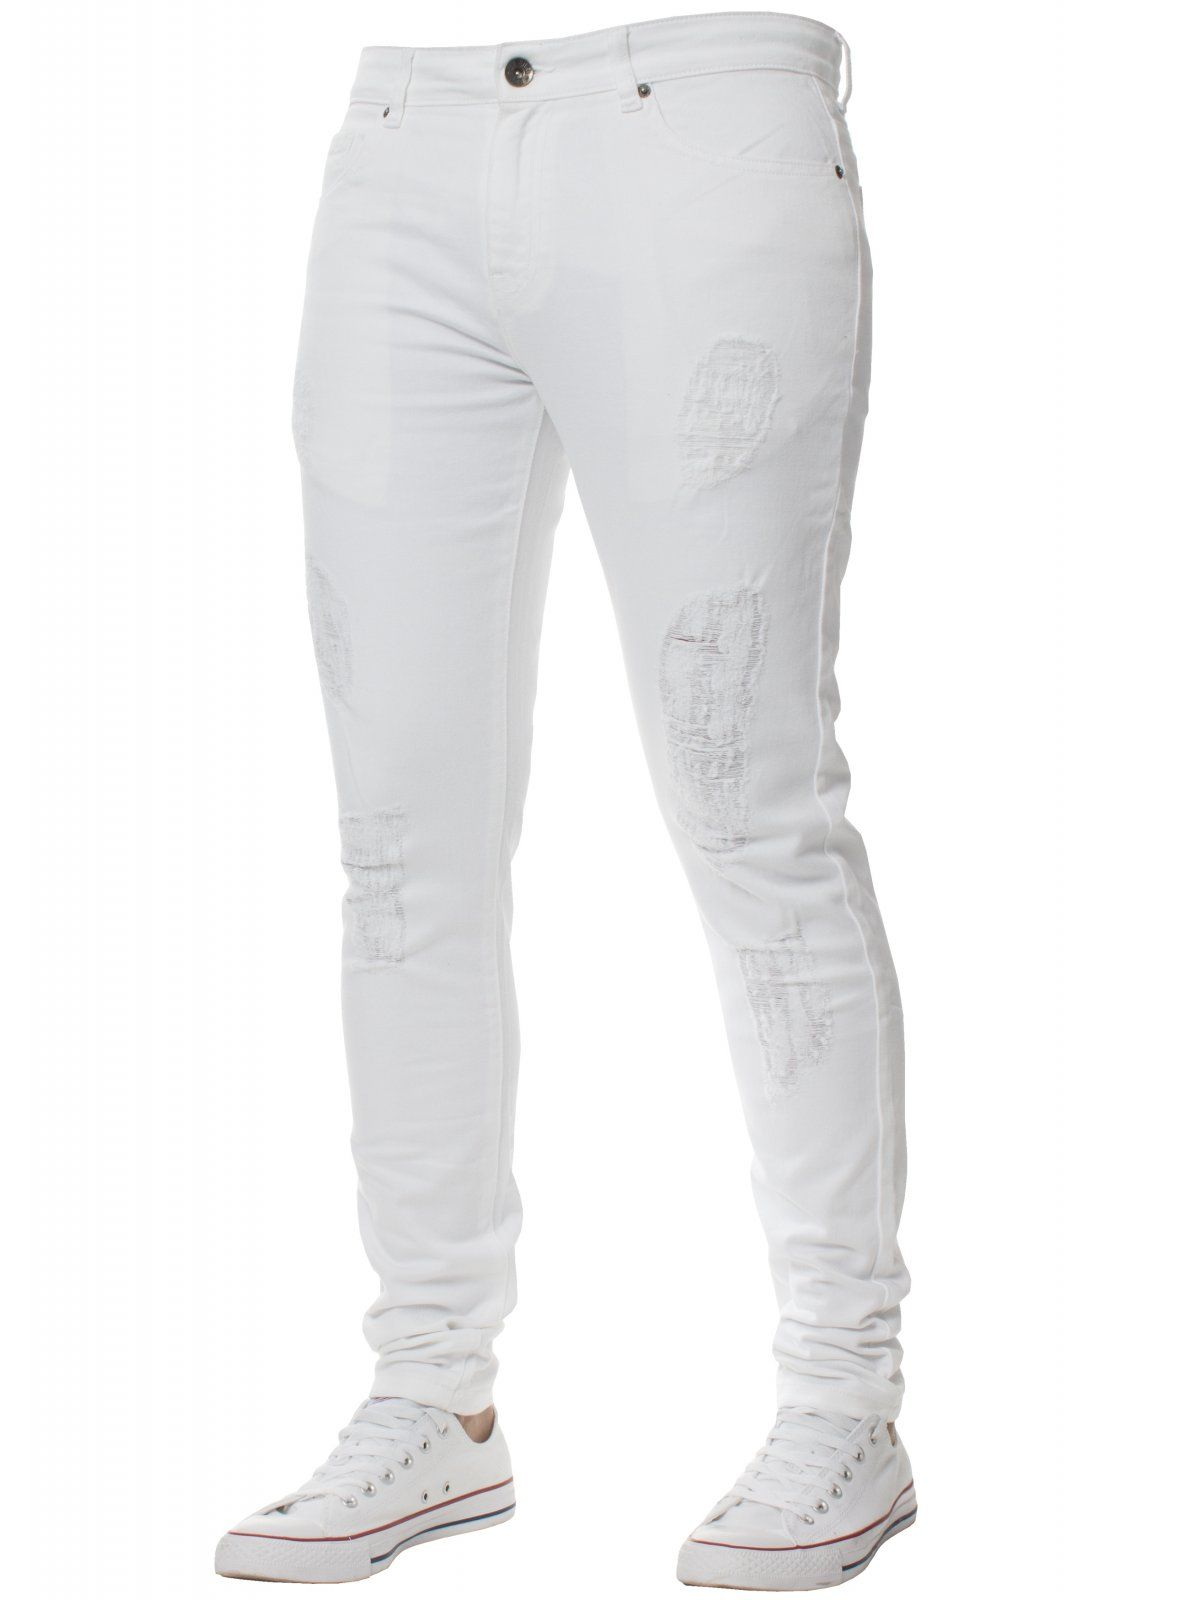 Mens Denim Ripped Denim Jeans  | Enzo Designer Menswear